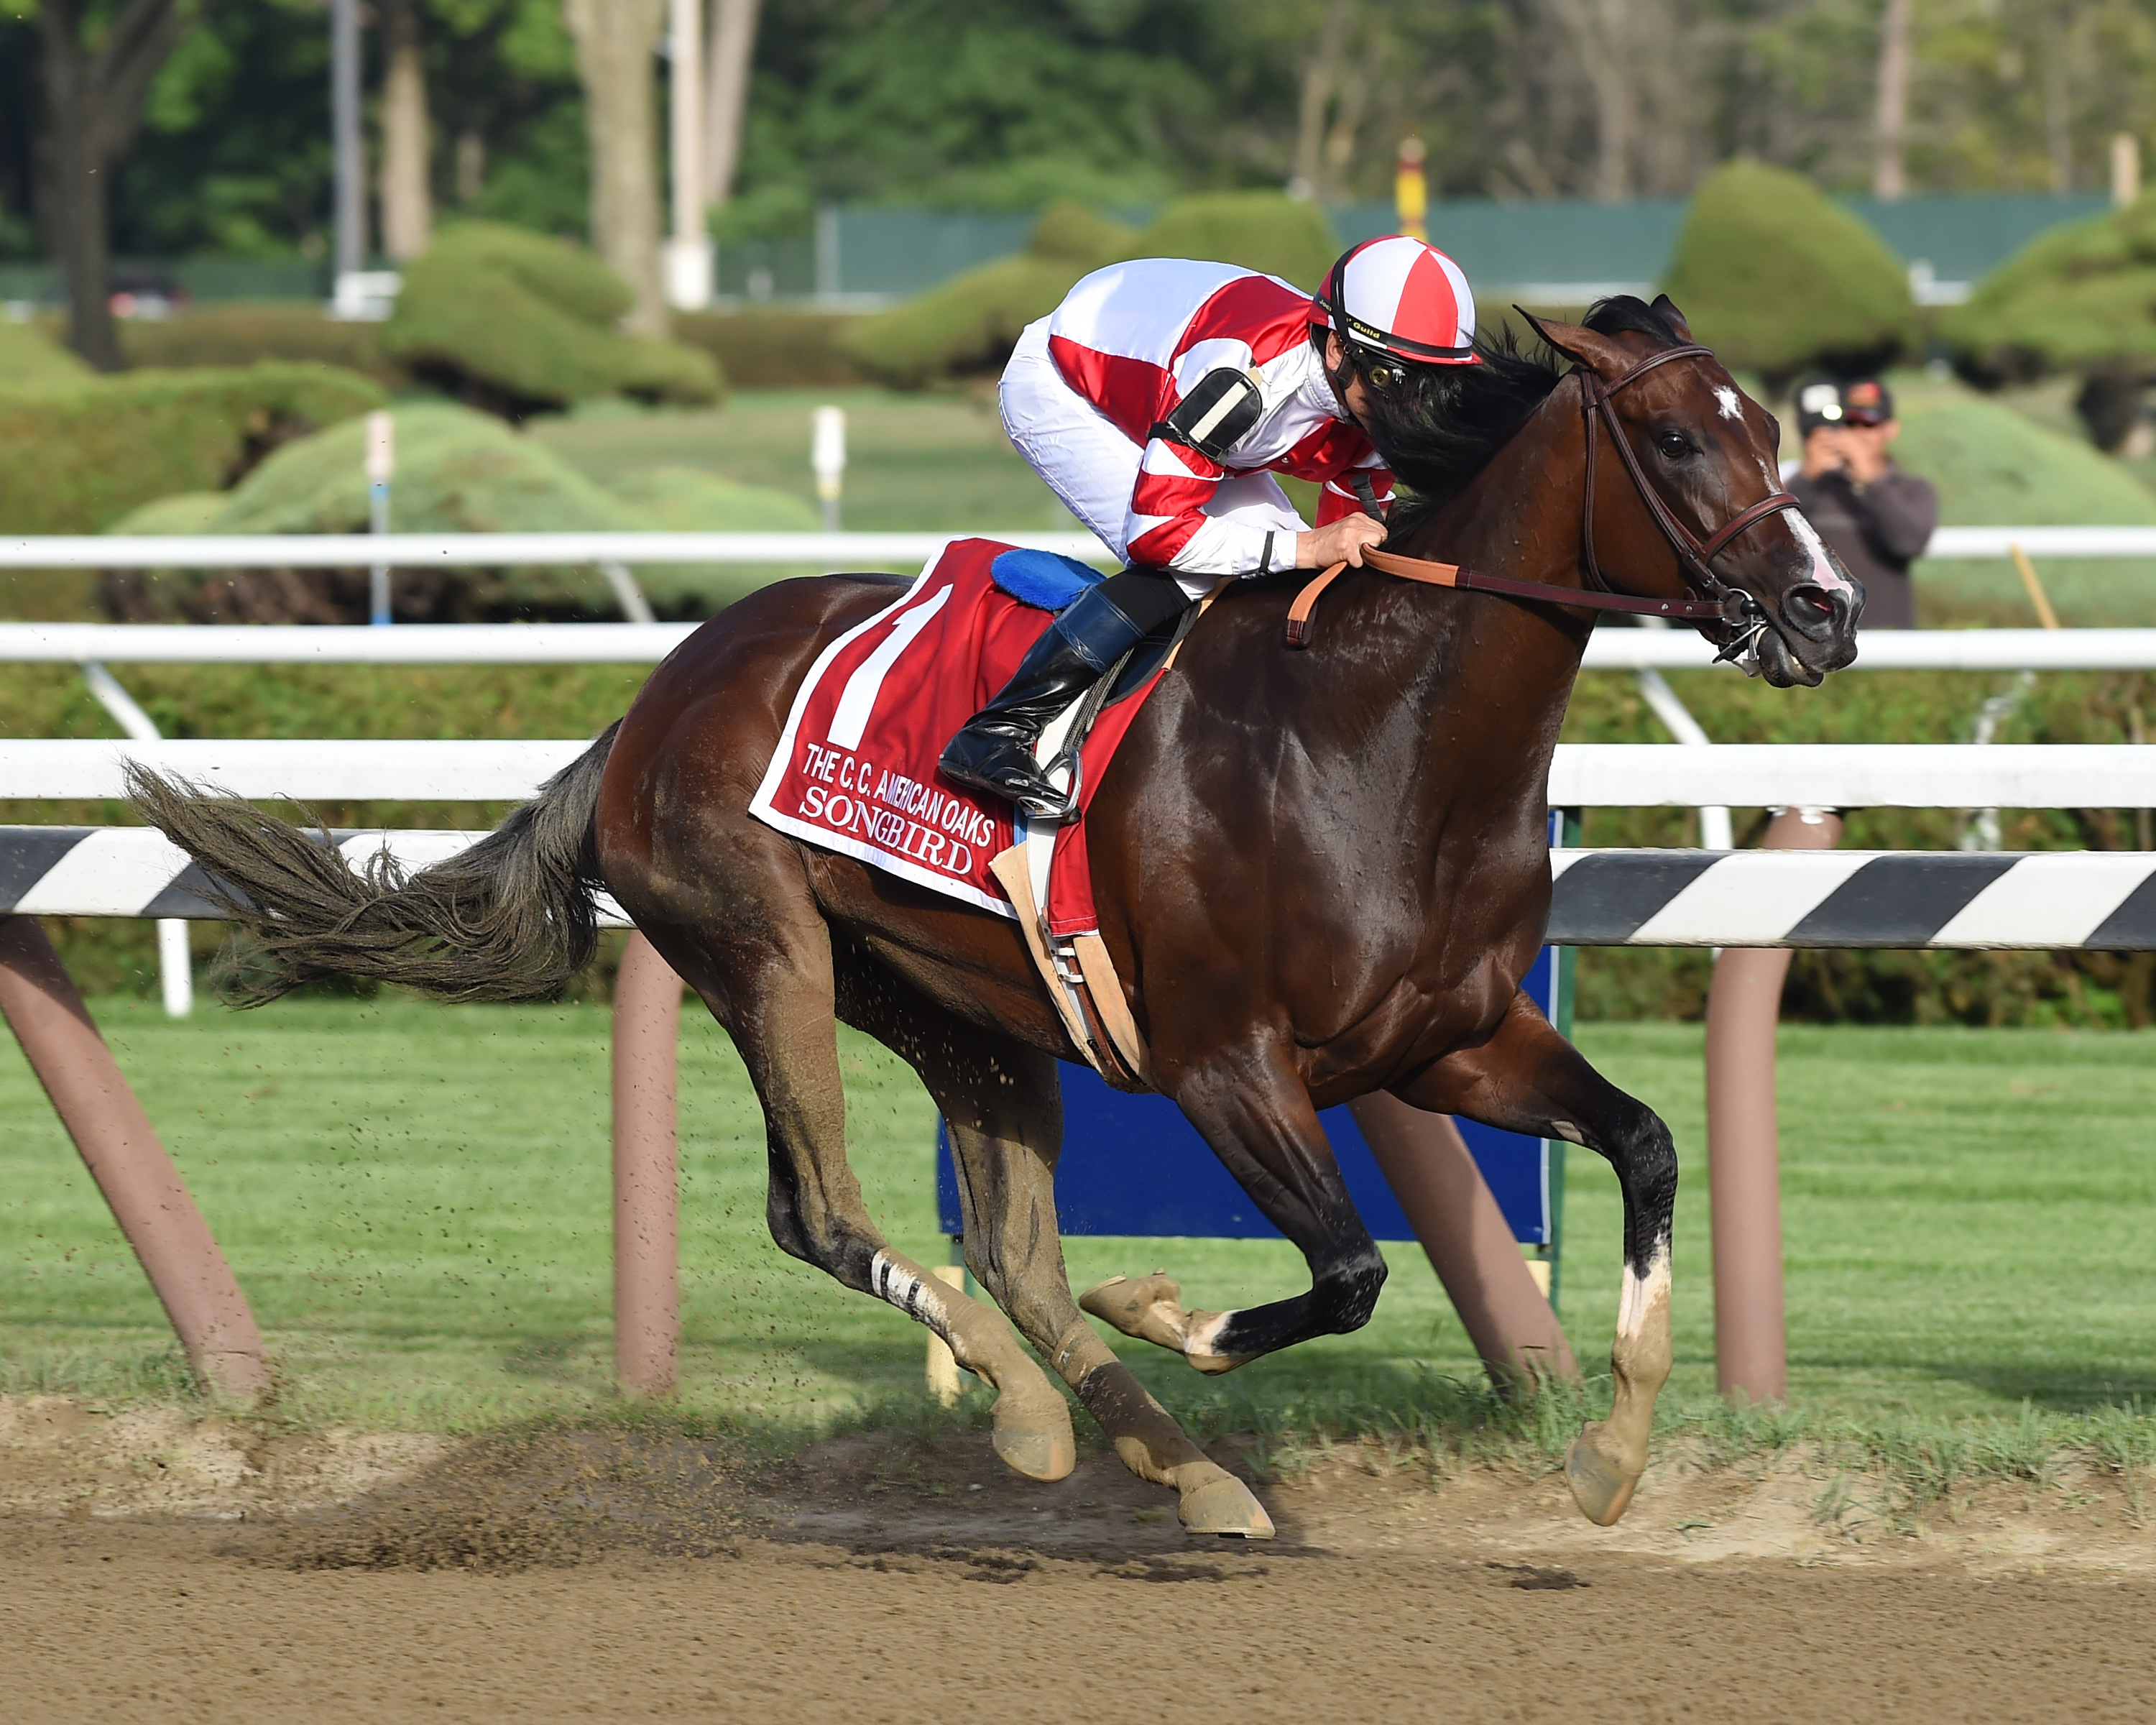 Songbird won twice at Saratoga in 2016  Photo Credit: NYRA